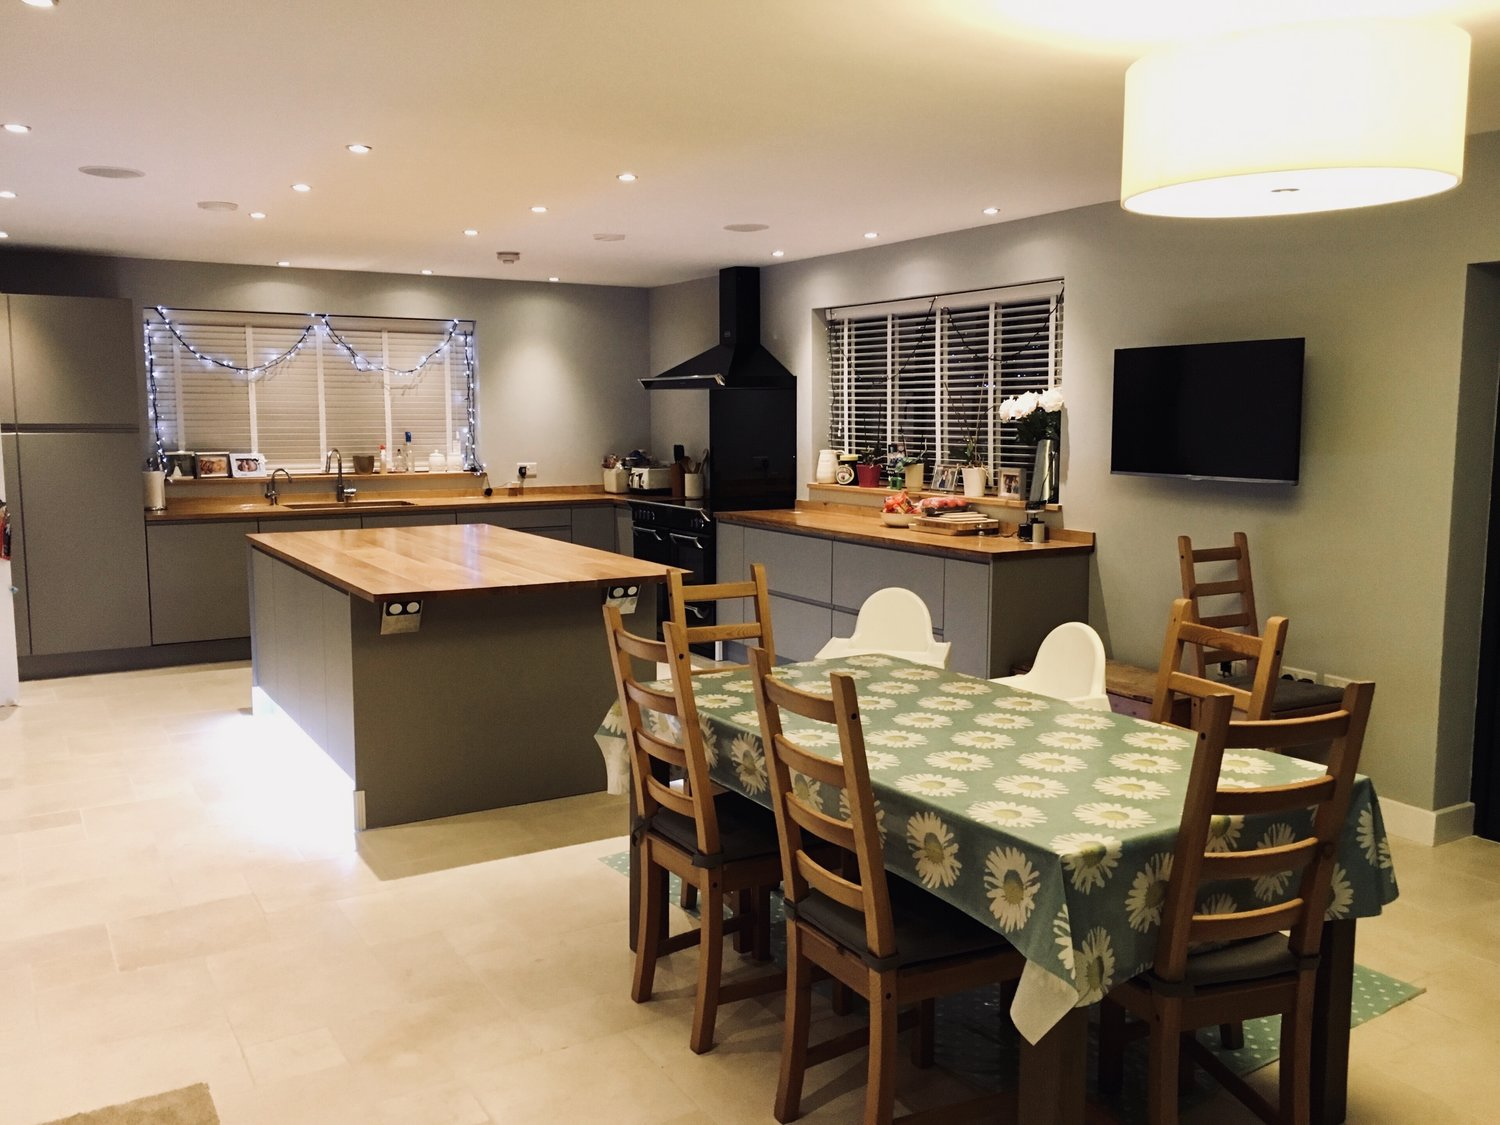 The completed kitchen with wooden worktops and a sleek cabinet design for a minimalist modern look, and lounge area for a eco home in West Sussex